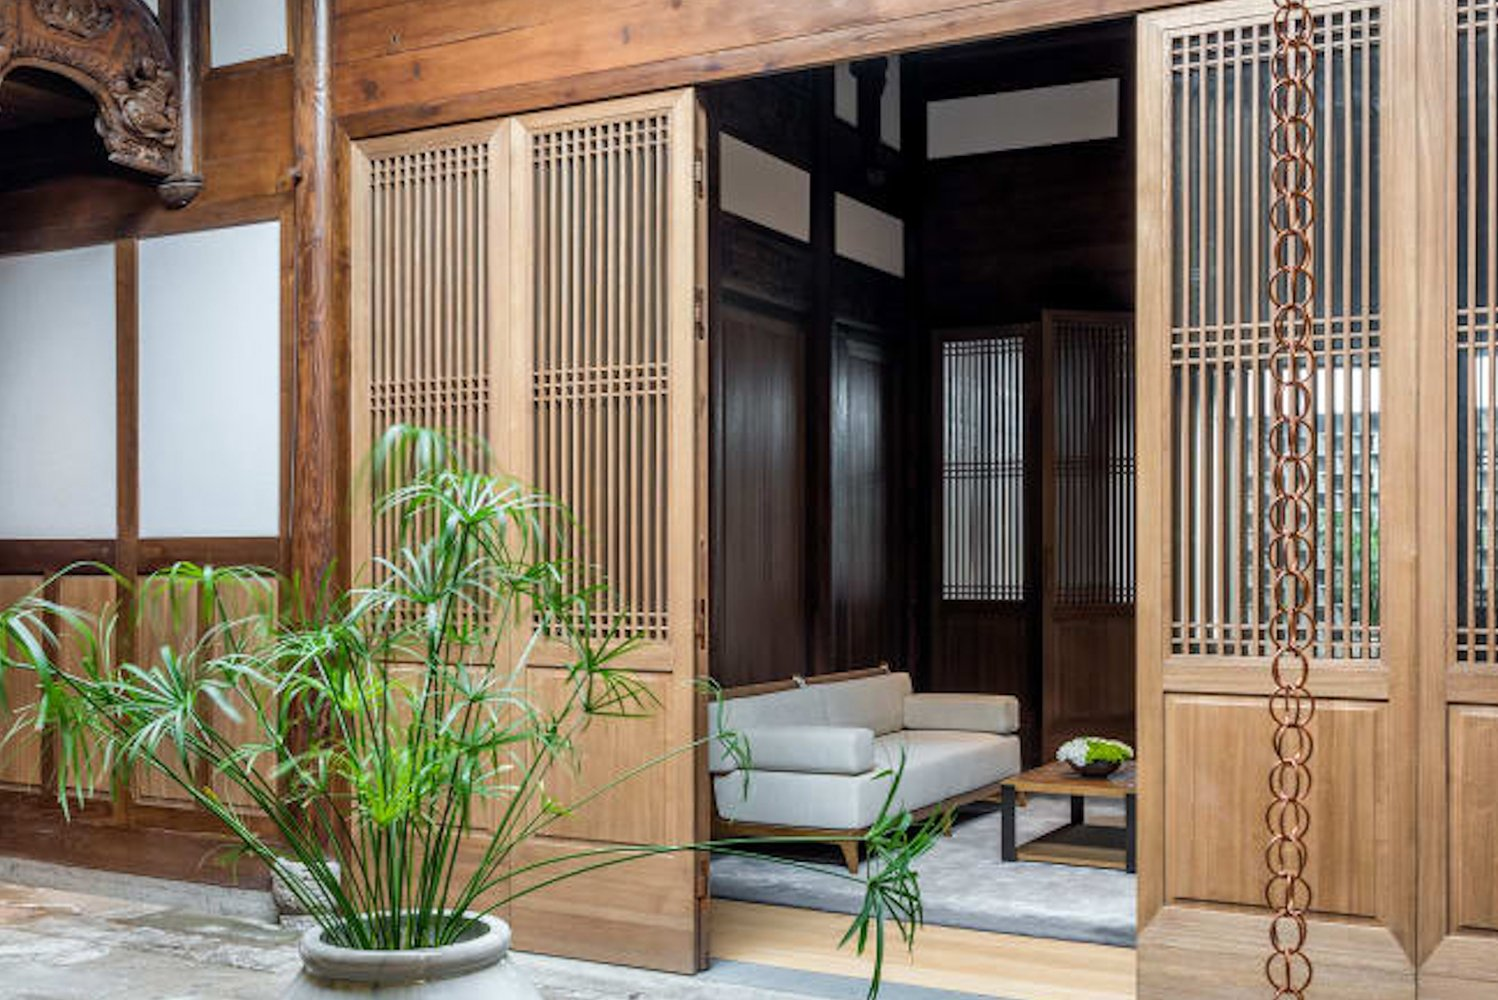 Each 700-square-foot accommodation pays homage to the structure of the Chinese courtyard home with two private courtyards attached to each one.